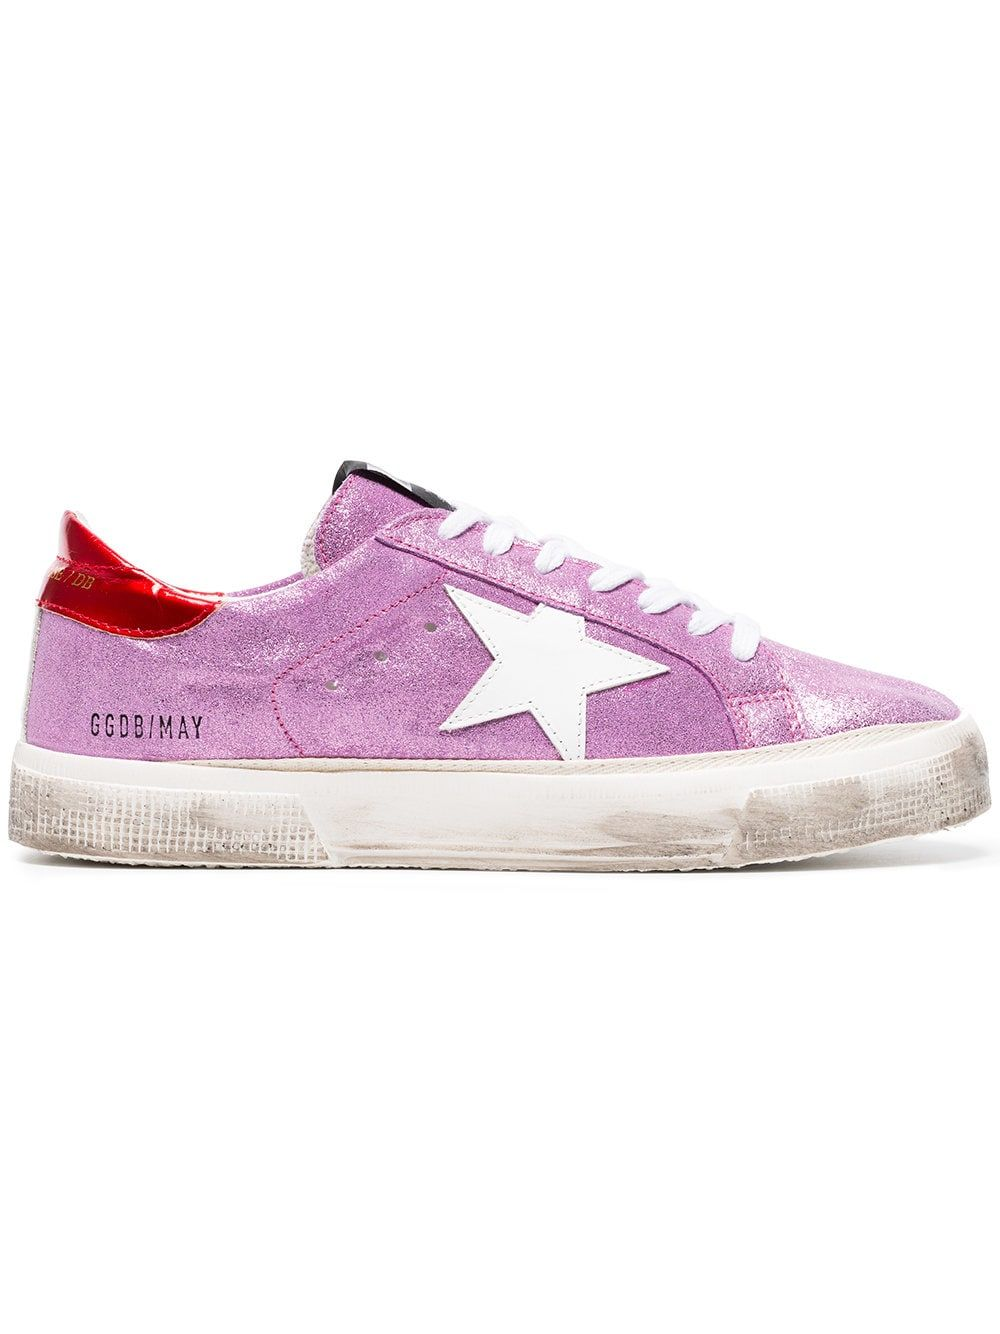 0c656edeb79 Golden Goose Deluxe Brand pink May glitter leather sneakers | what i ...